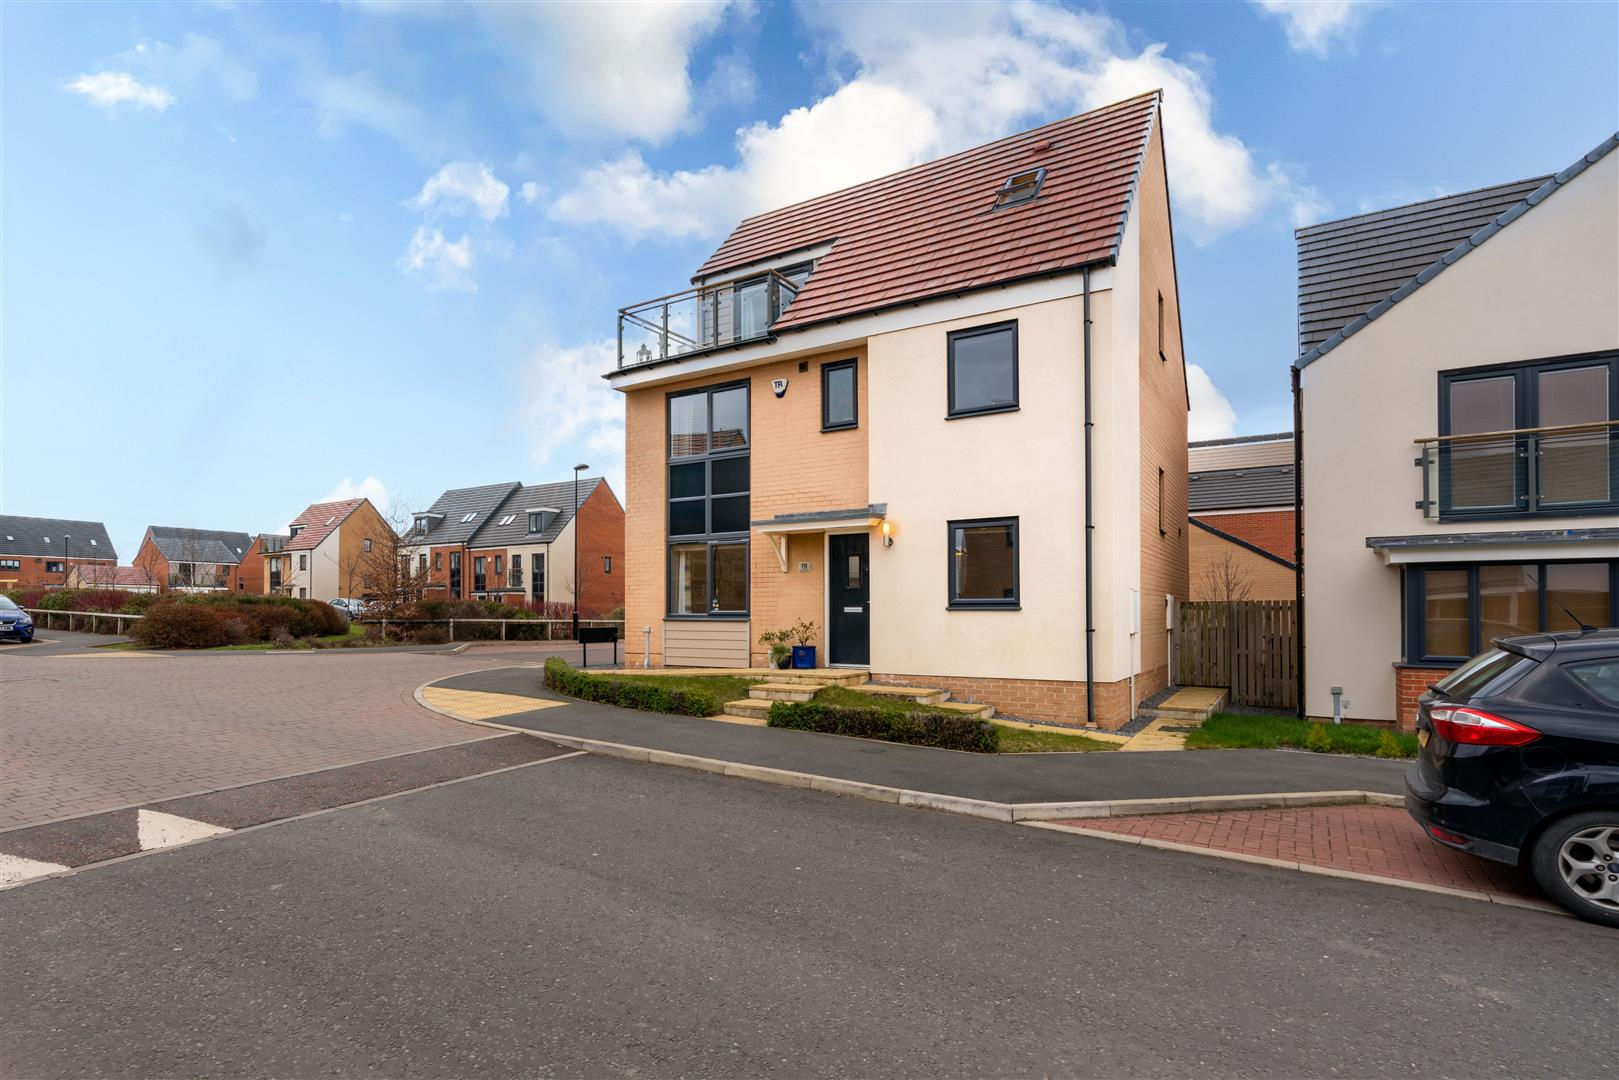 5 bed detached house for sale in Maynard Street, Great Park - Property Image 1